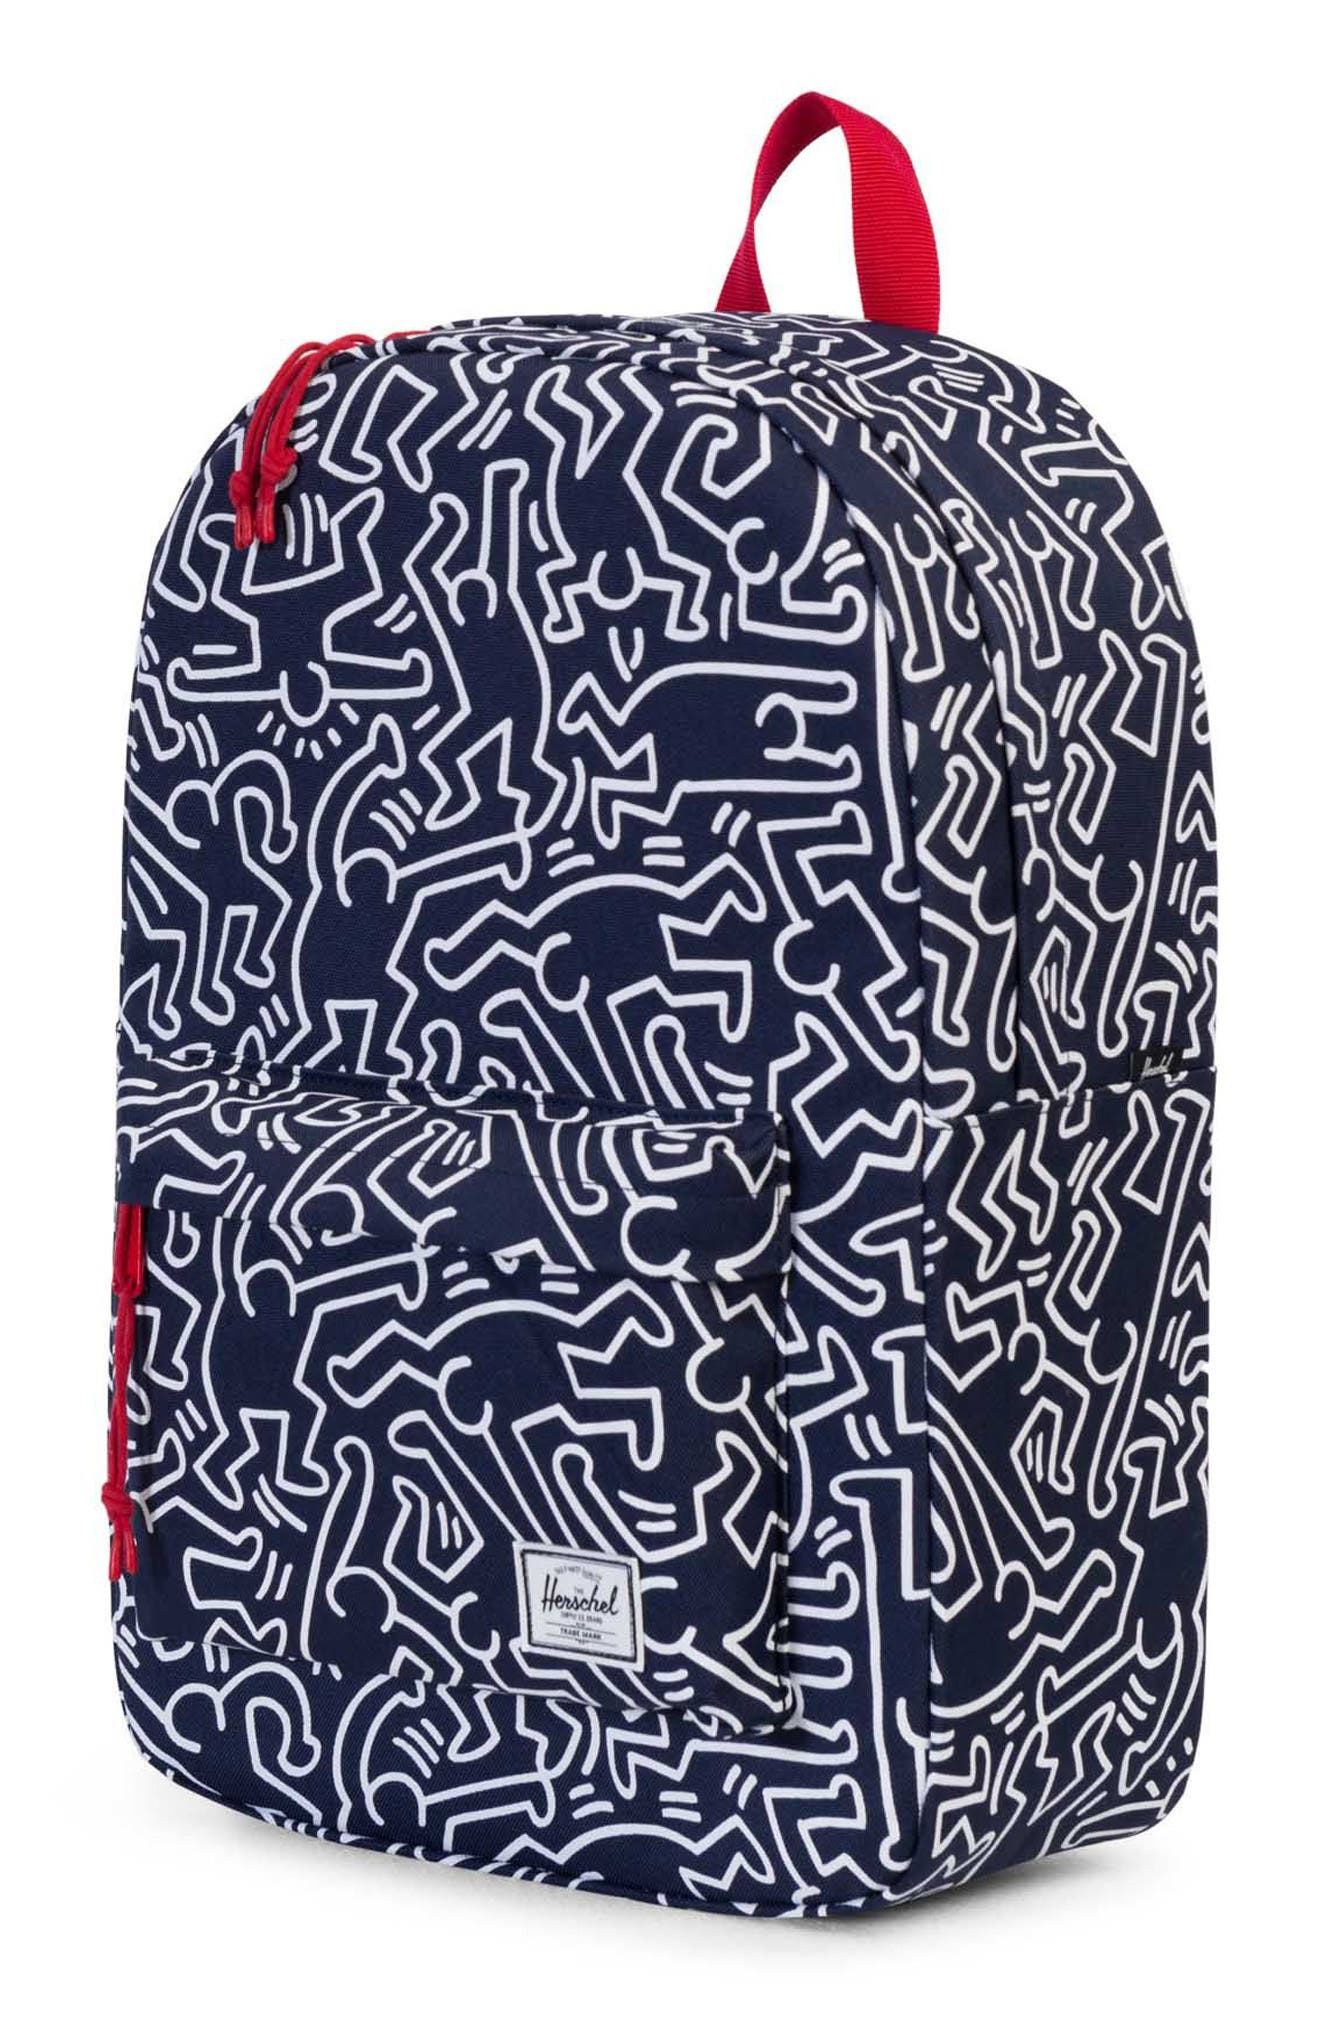 Winlaw x Keith Haring Backpack,                             Alternate thumbnail 8, color,